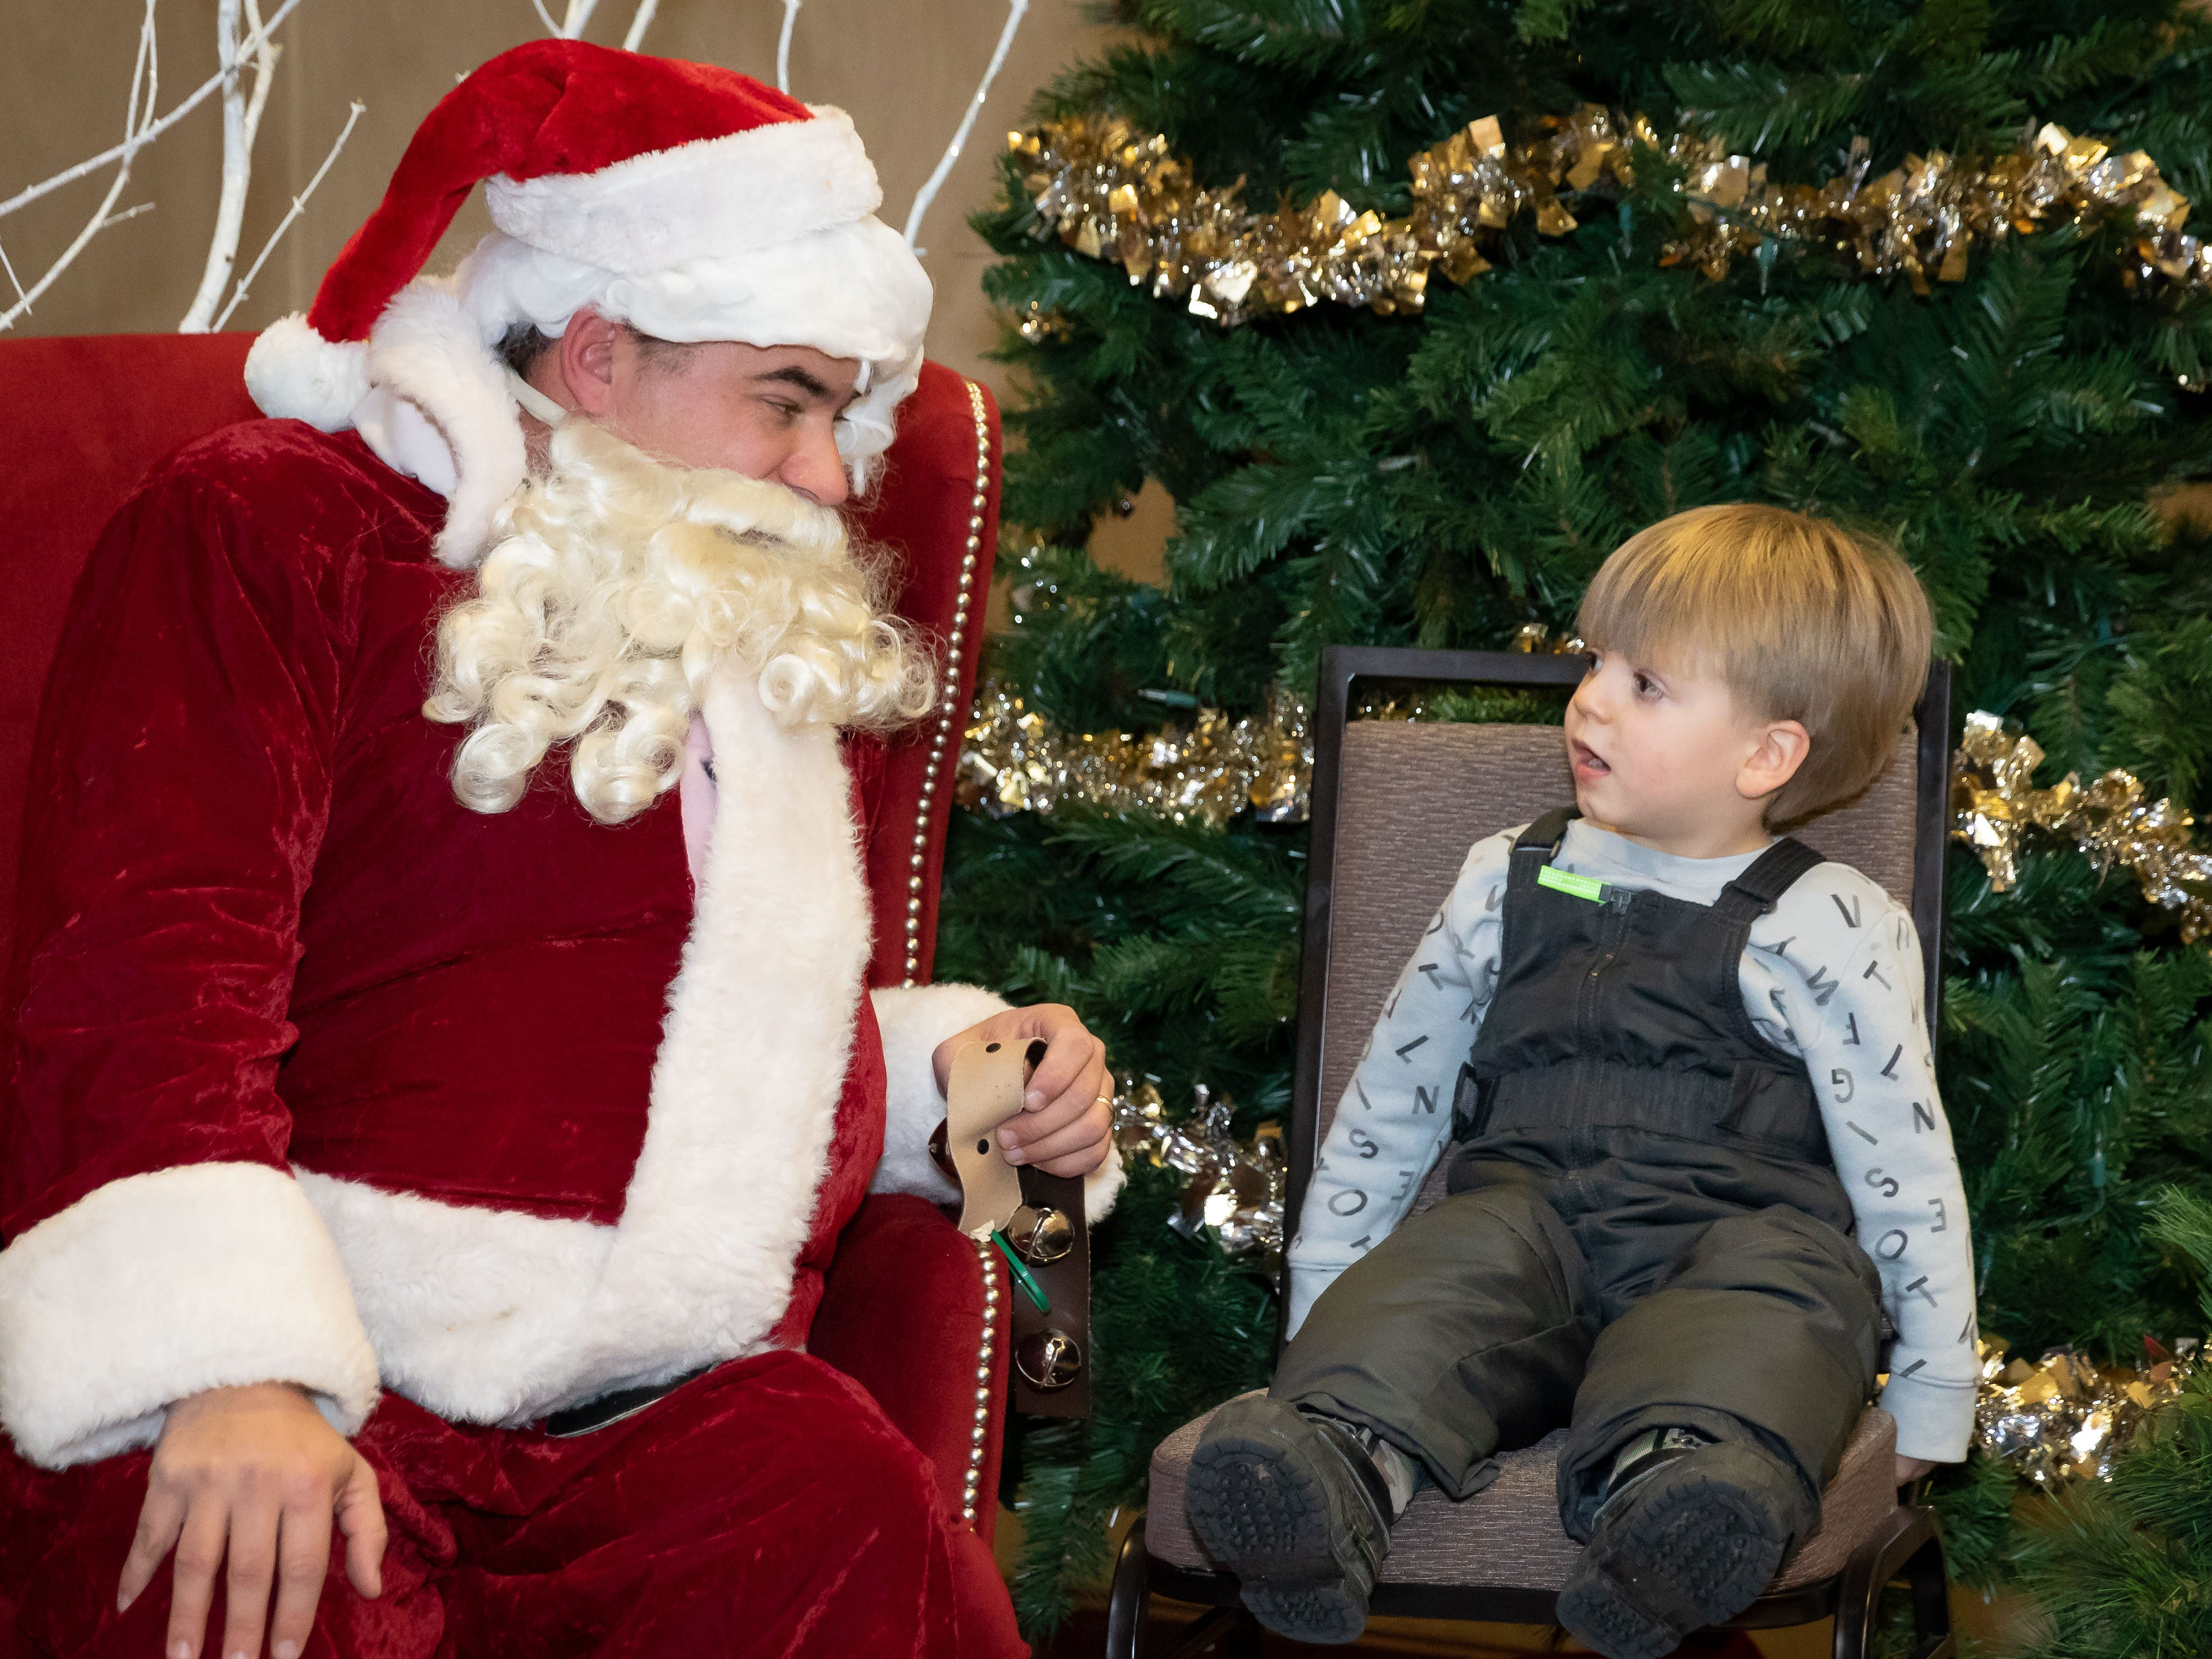 A young boy talks with Santa Claus at the Holiday Inn after the Main Street Holiday Parade on Thursday, Nov. 15, 2018, in downtown Marshfield.